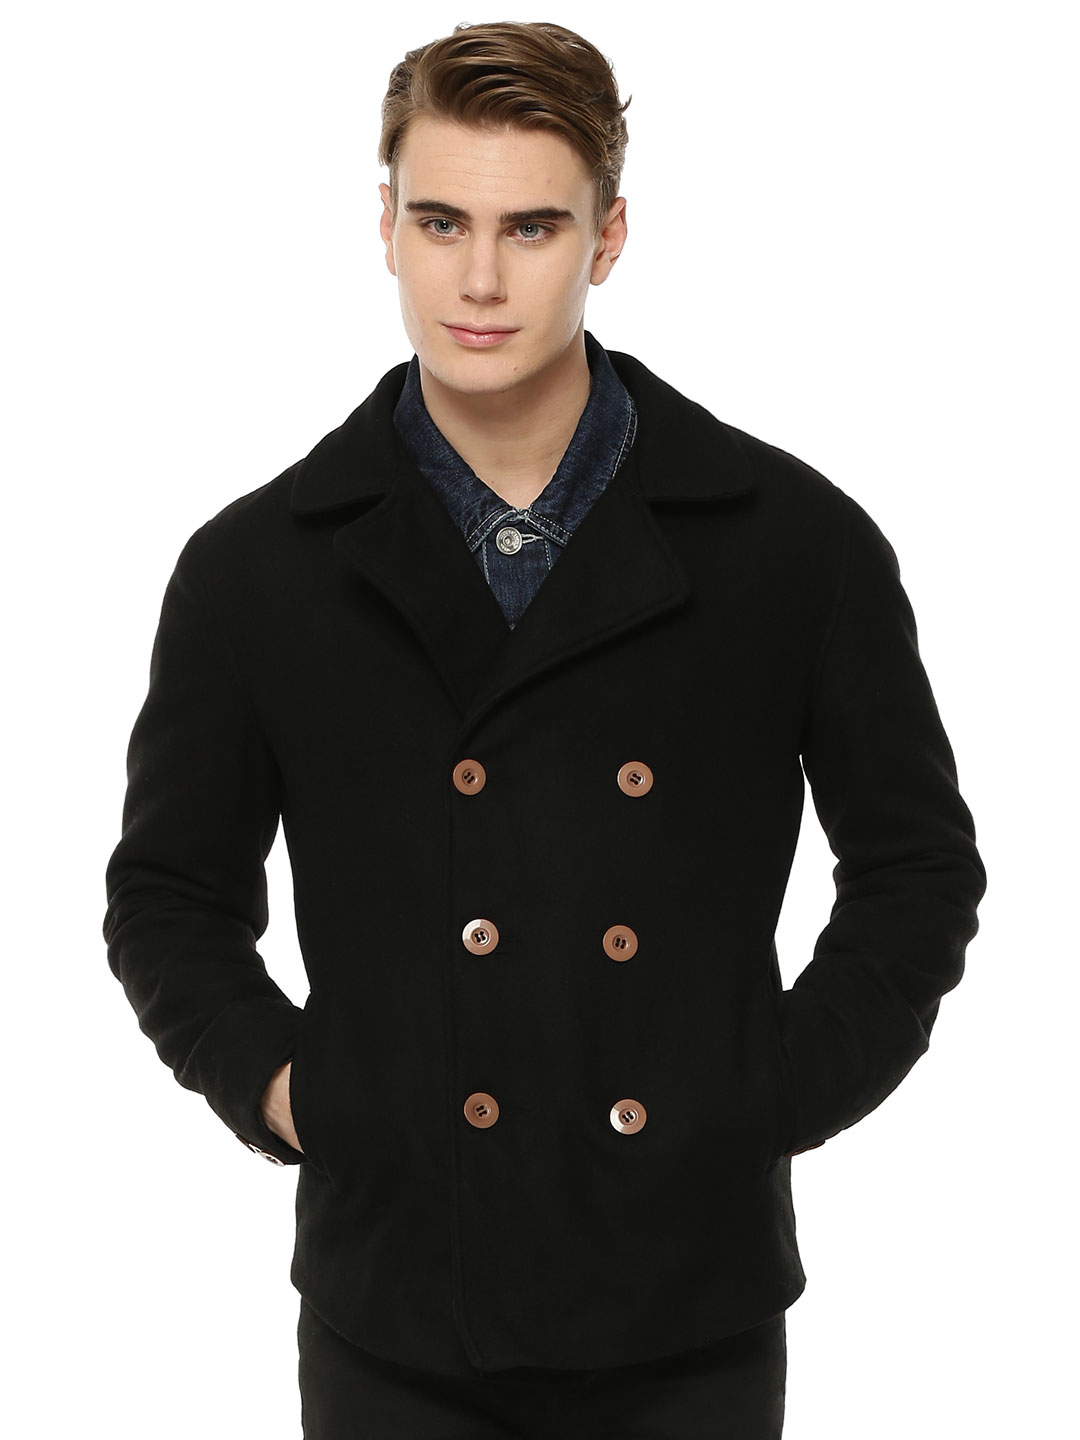 Berfolk Black Peacoat With Side Pockets 1